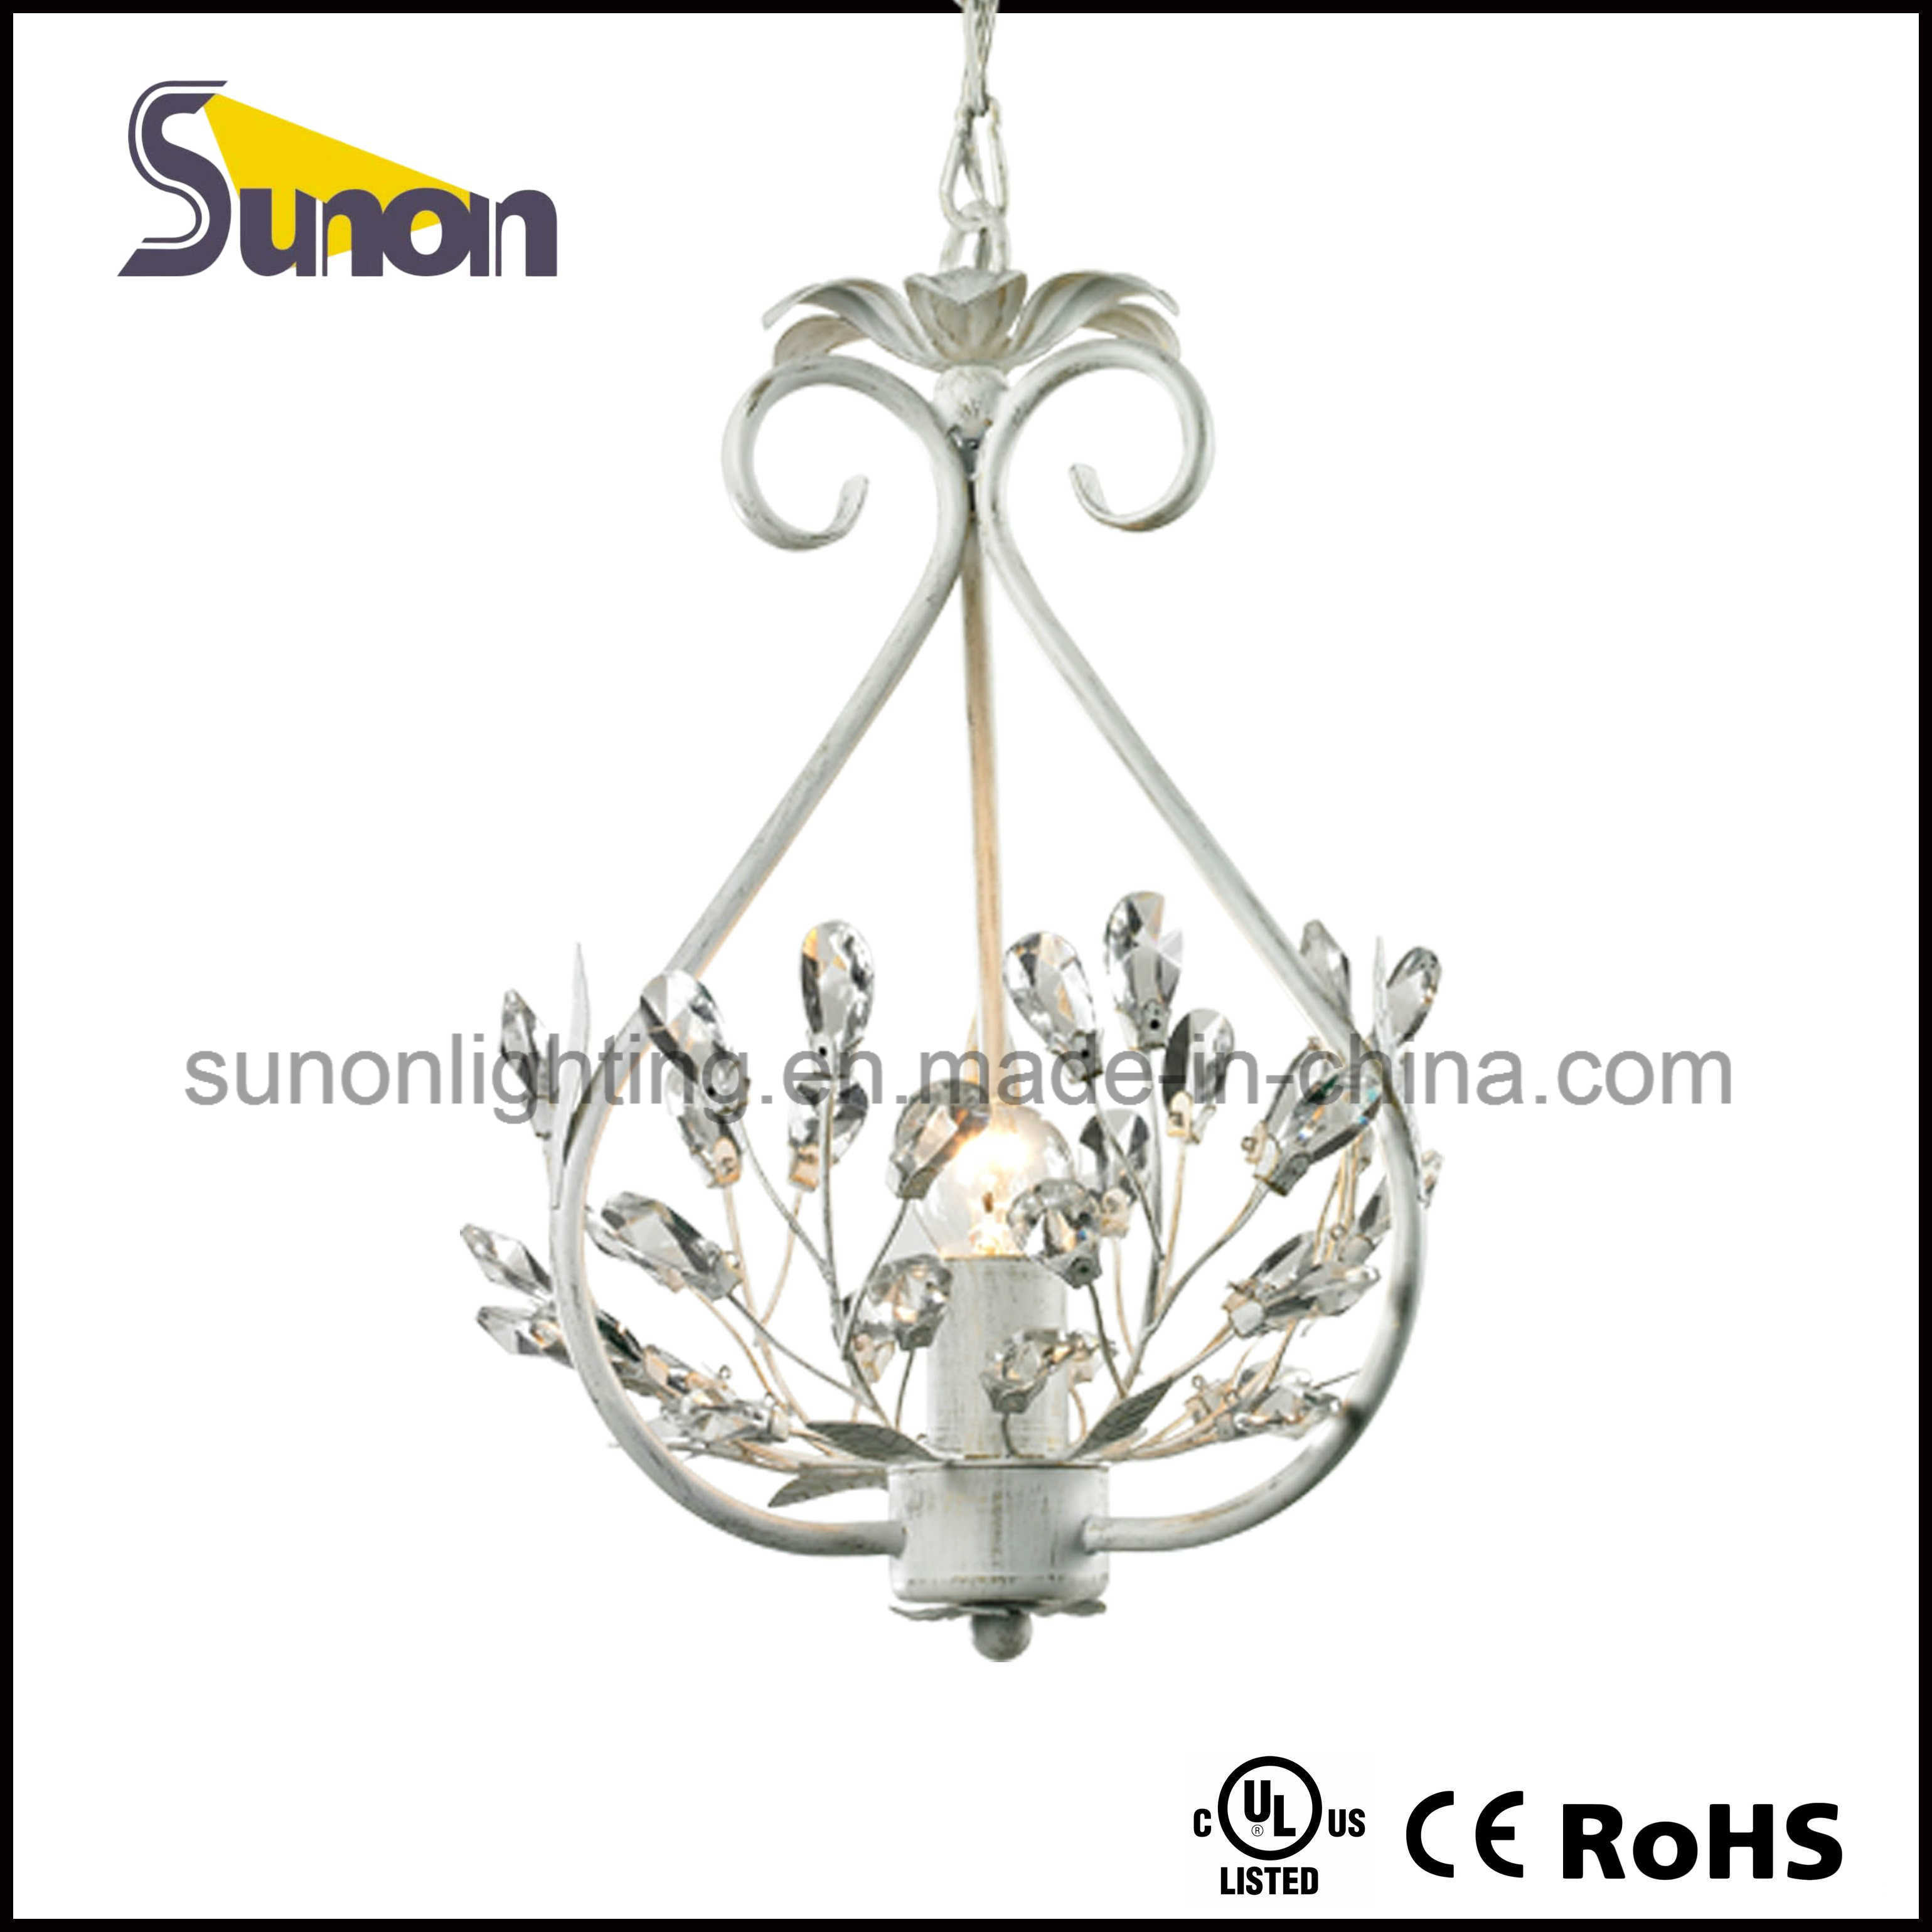 Wrought Iron and Crystal Light Chandelier Pendant White Fixture Lighting Pendant Lamp